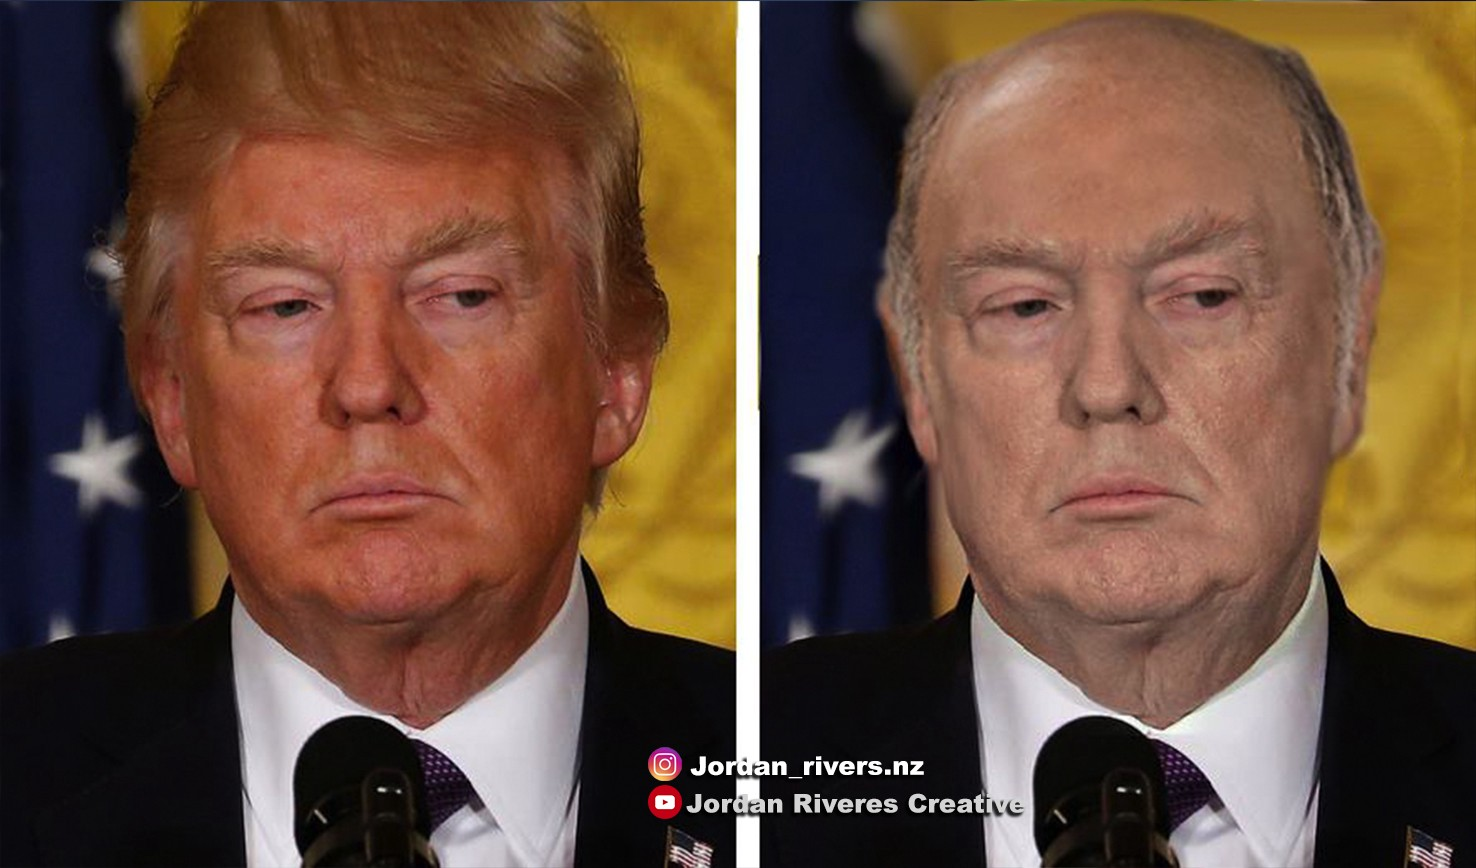 A modified picture of President Trump, edited to show him without spray tan or combover hair.